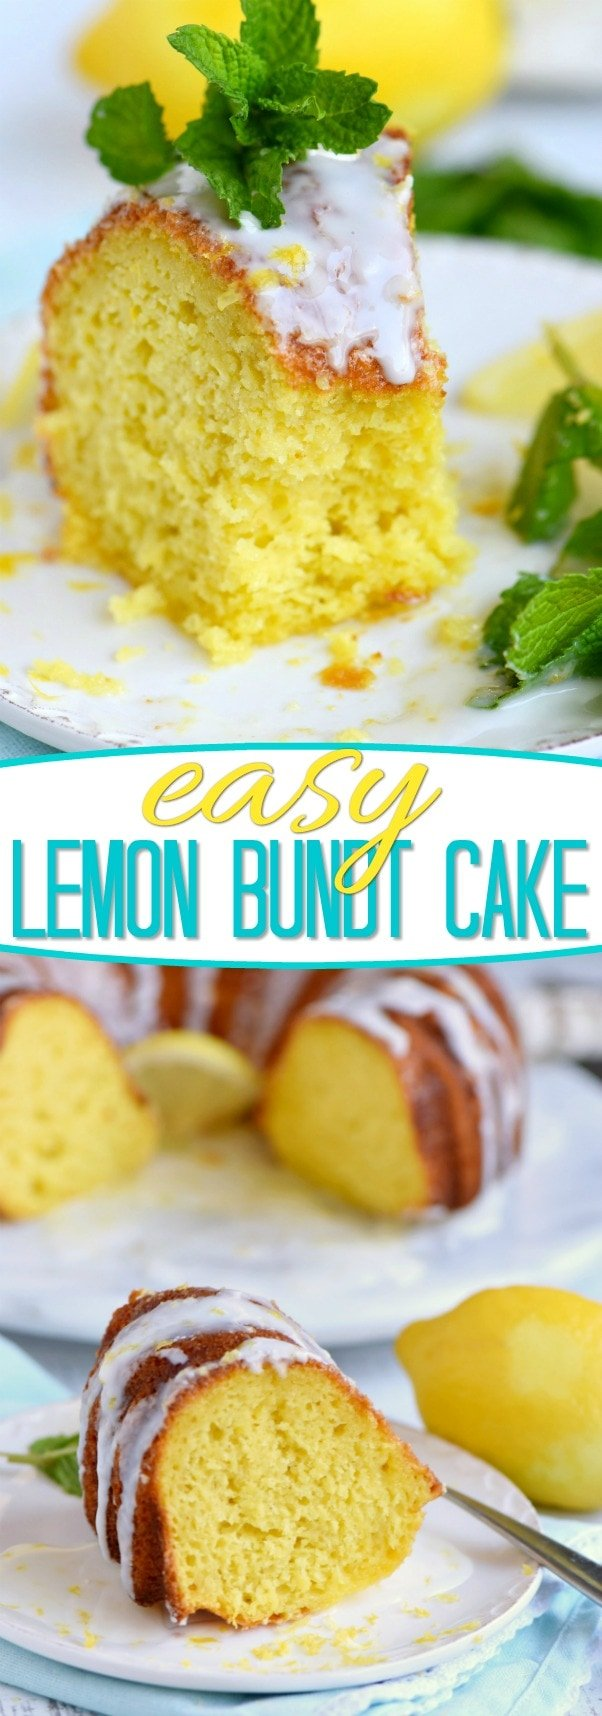 lemon bundt cake recipe topped with a lemon glaze